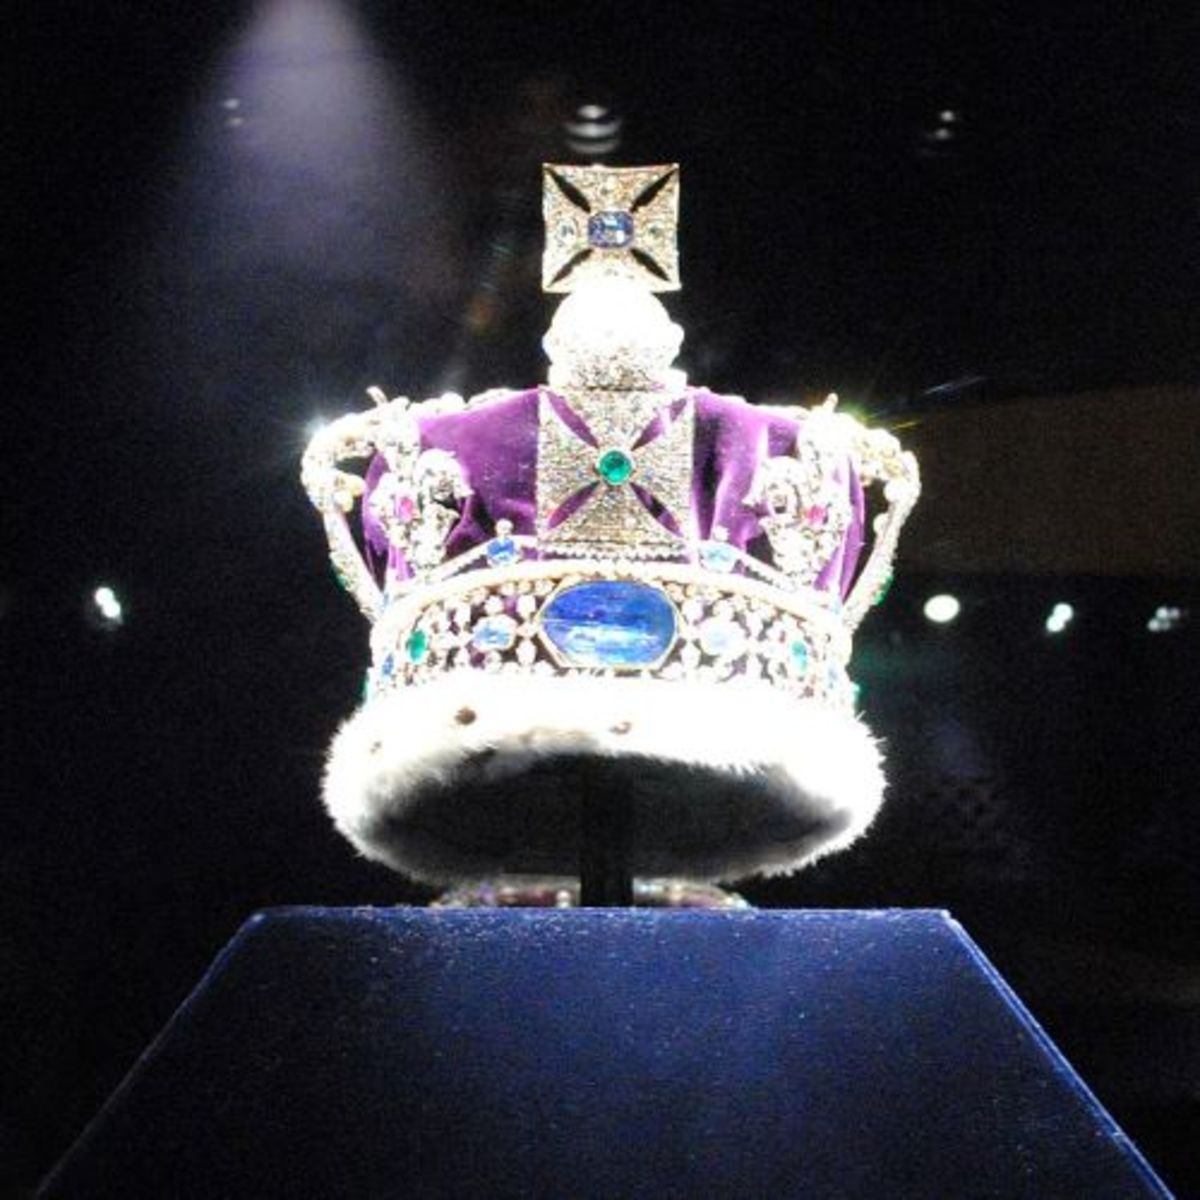 The reverse of the Imperial State Crown showing the Stuart Sapphire by Adam Storey, June 2012.